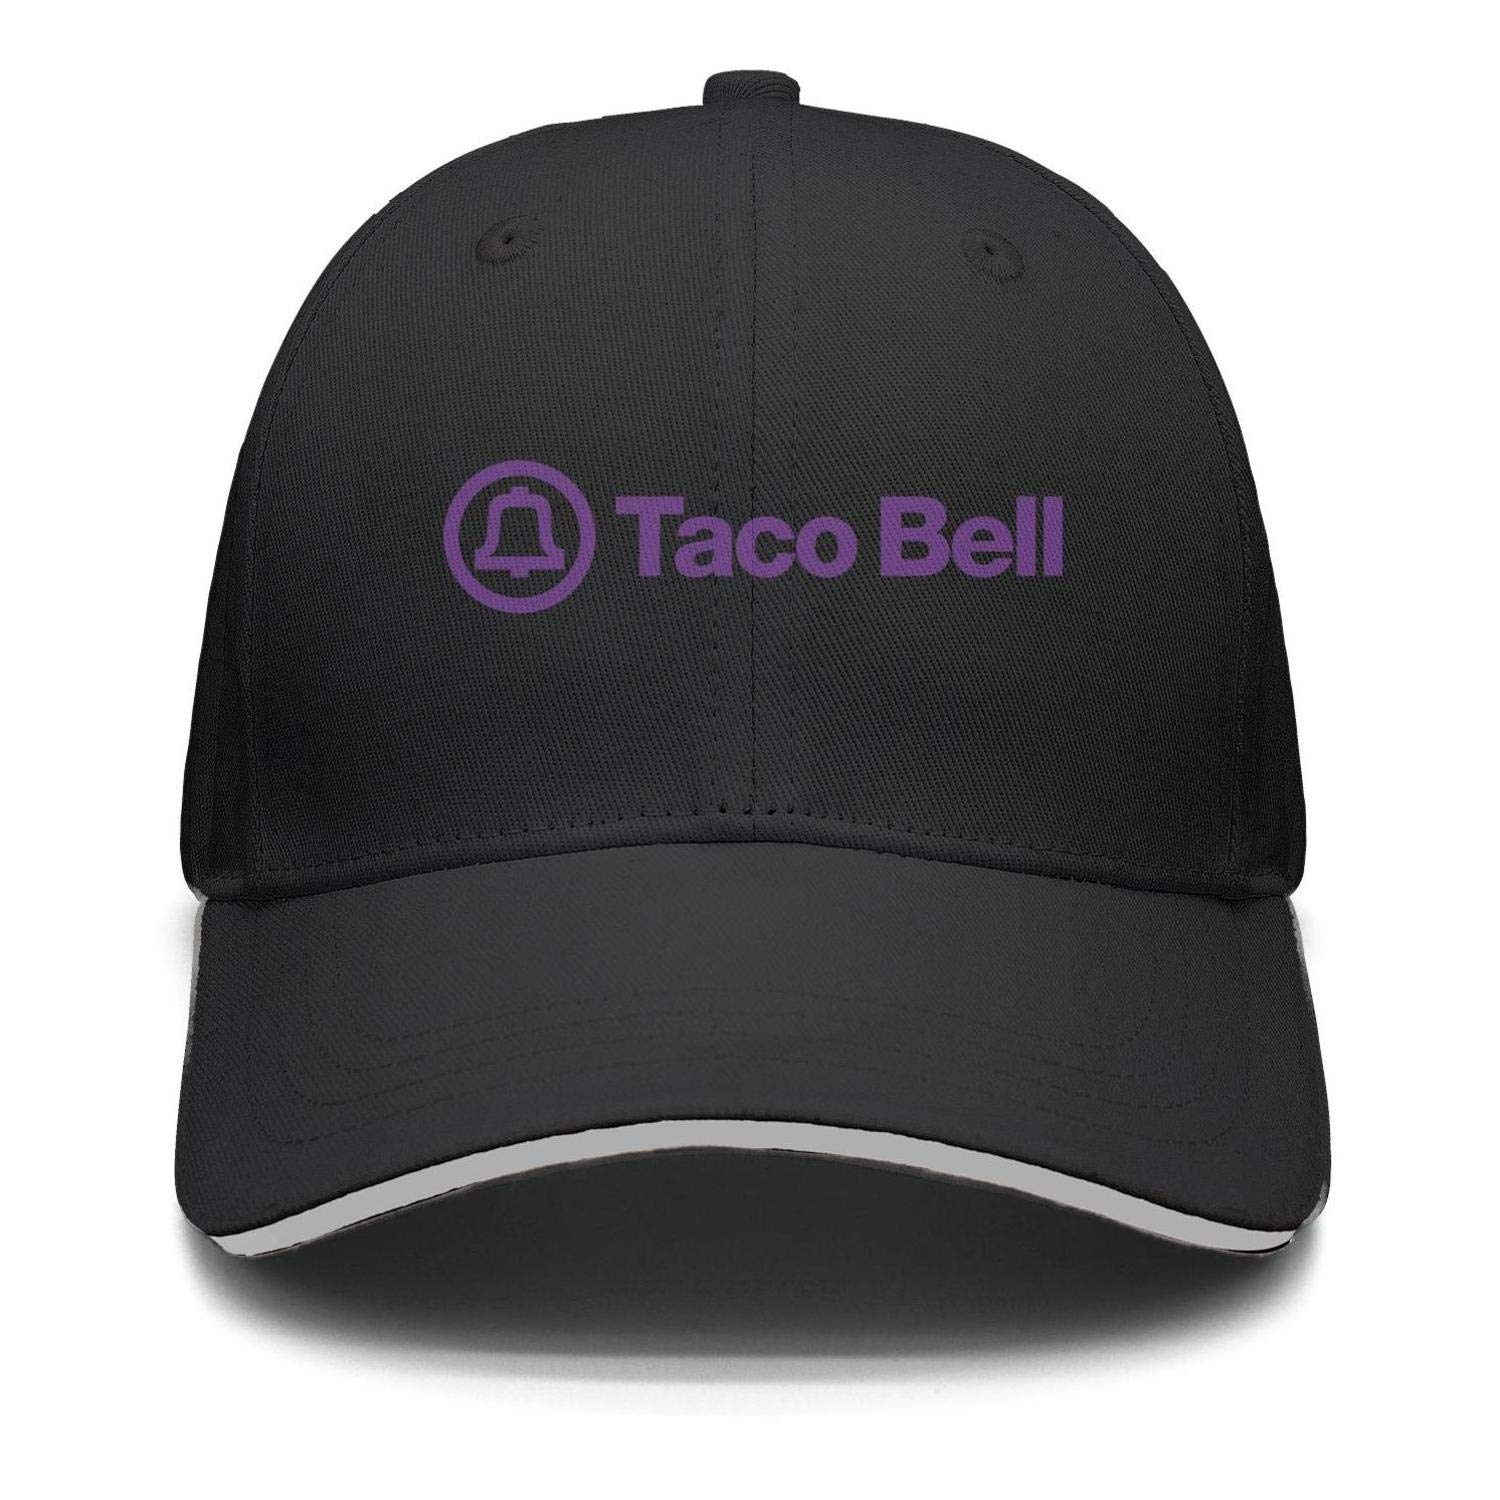 848ec91a42188 iorty rtty Caps Adjustable Fitted Bell-System-Taco-Bell-Logo- Vintage  Baseball Hat at Amazon Men s Clothing store